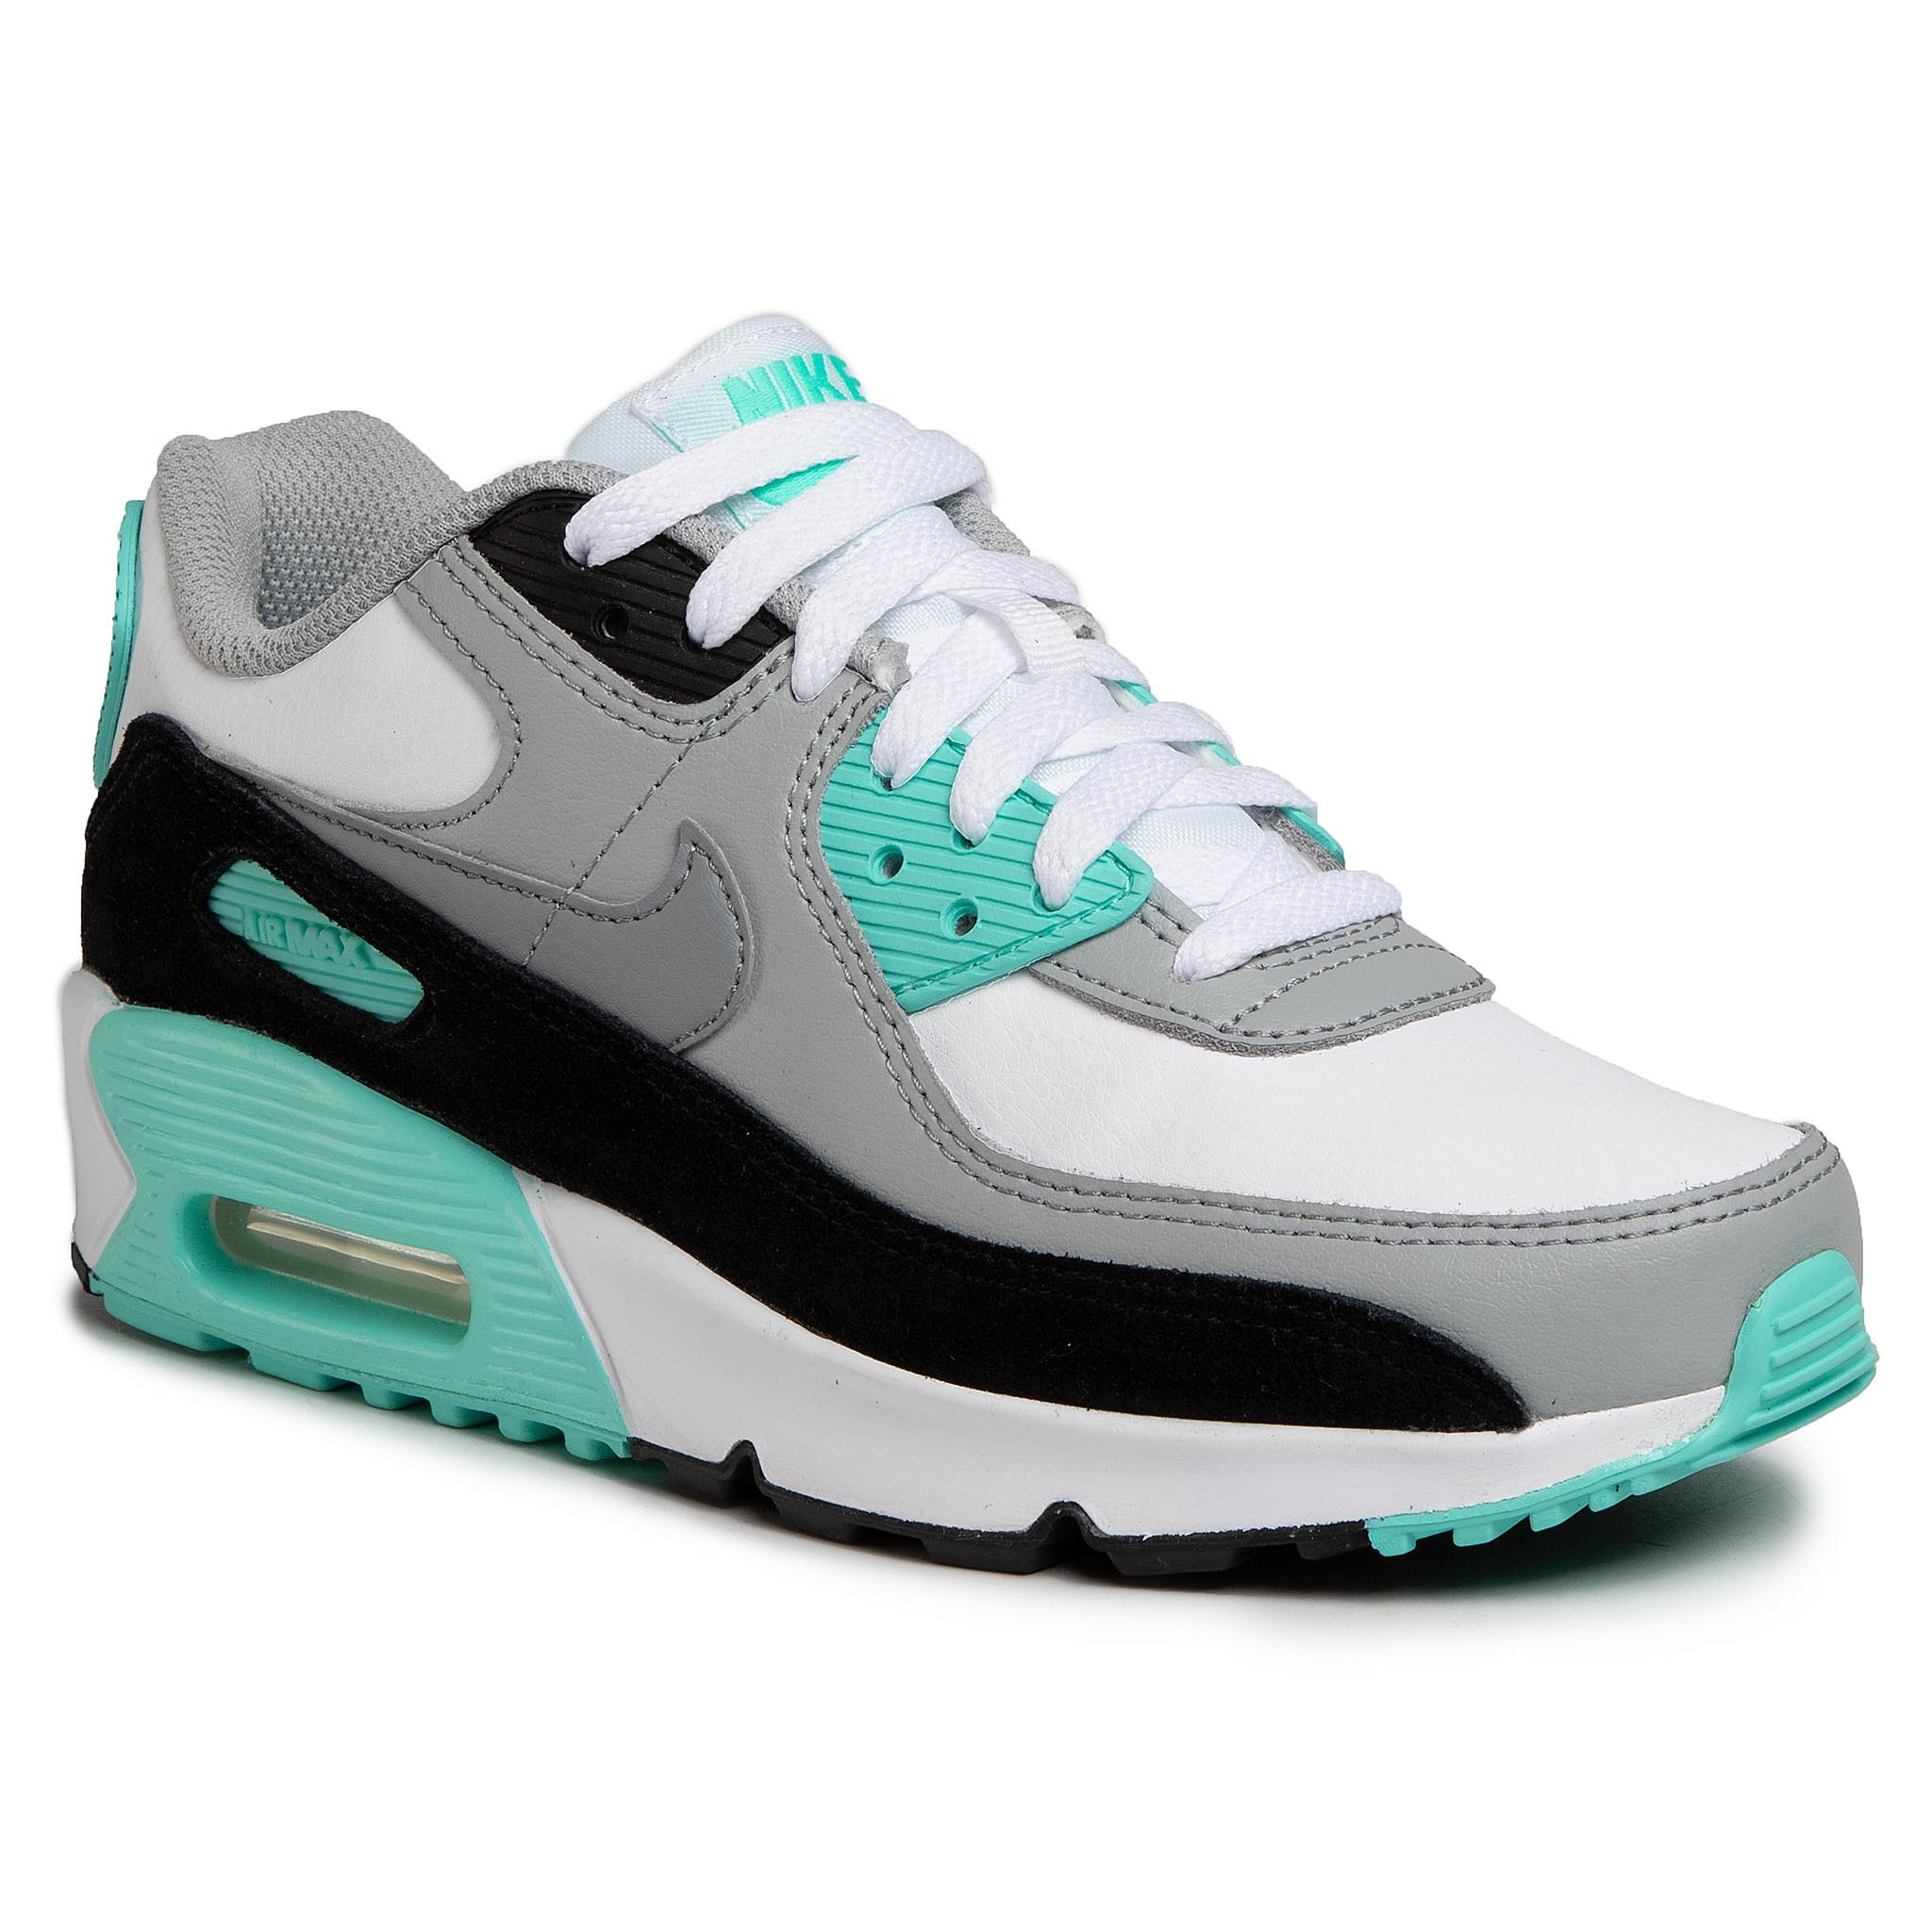 Topánky NIKE - Air Max 90 Ltr (GS) CD6864 102 White/Particle Grey